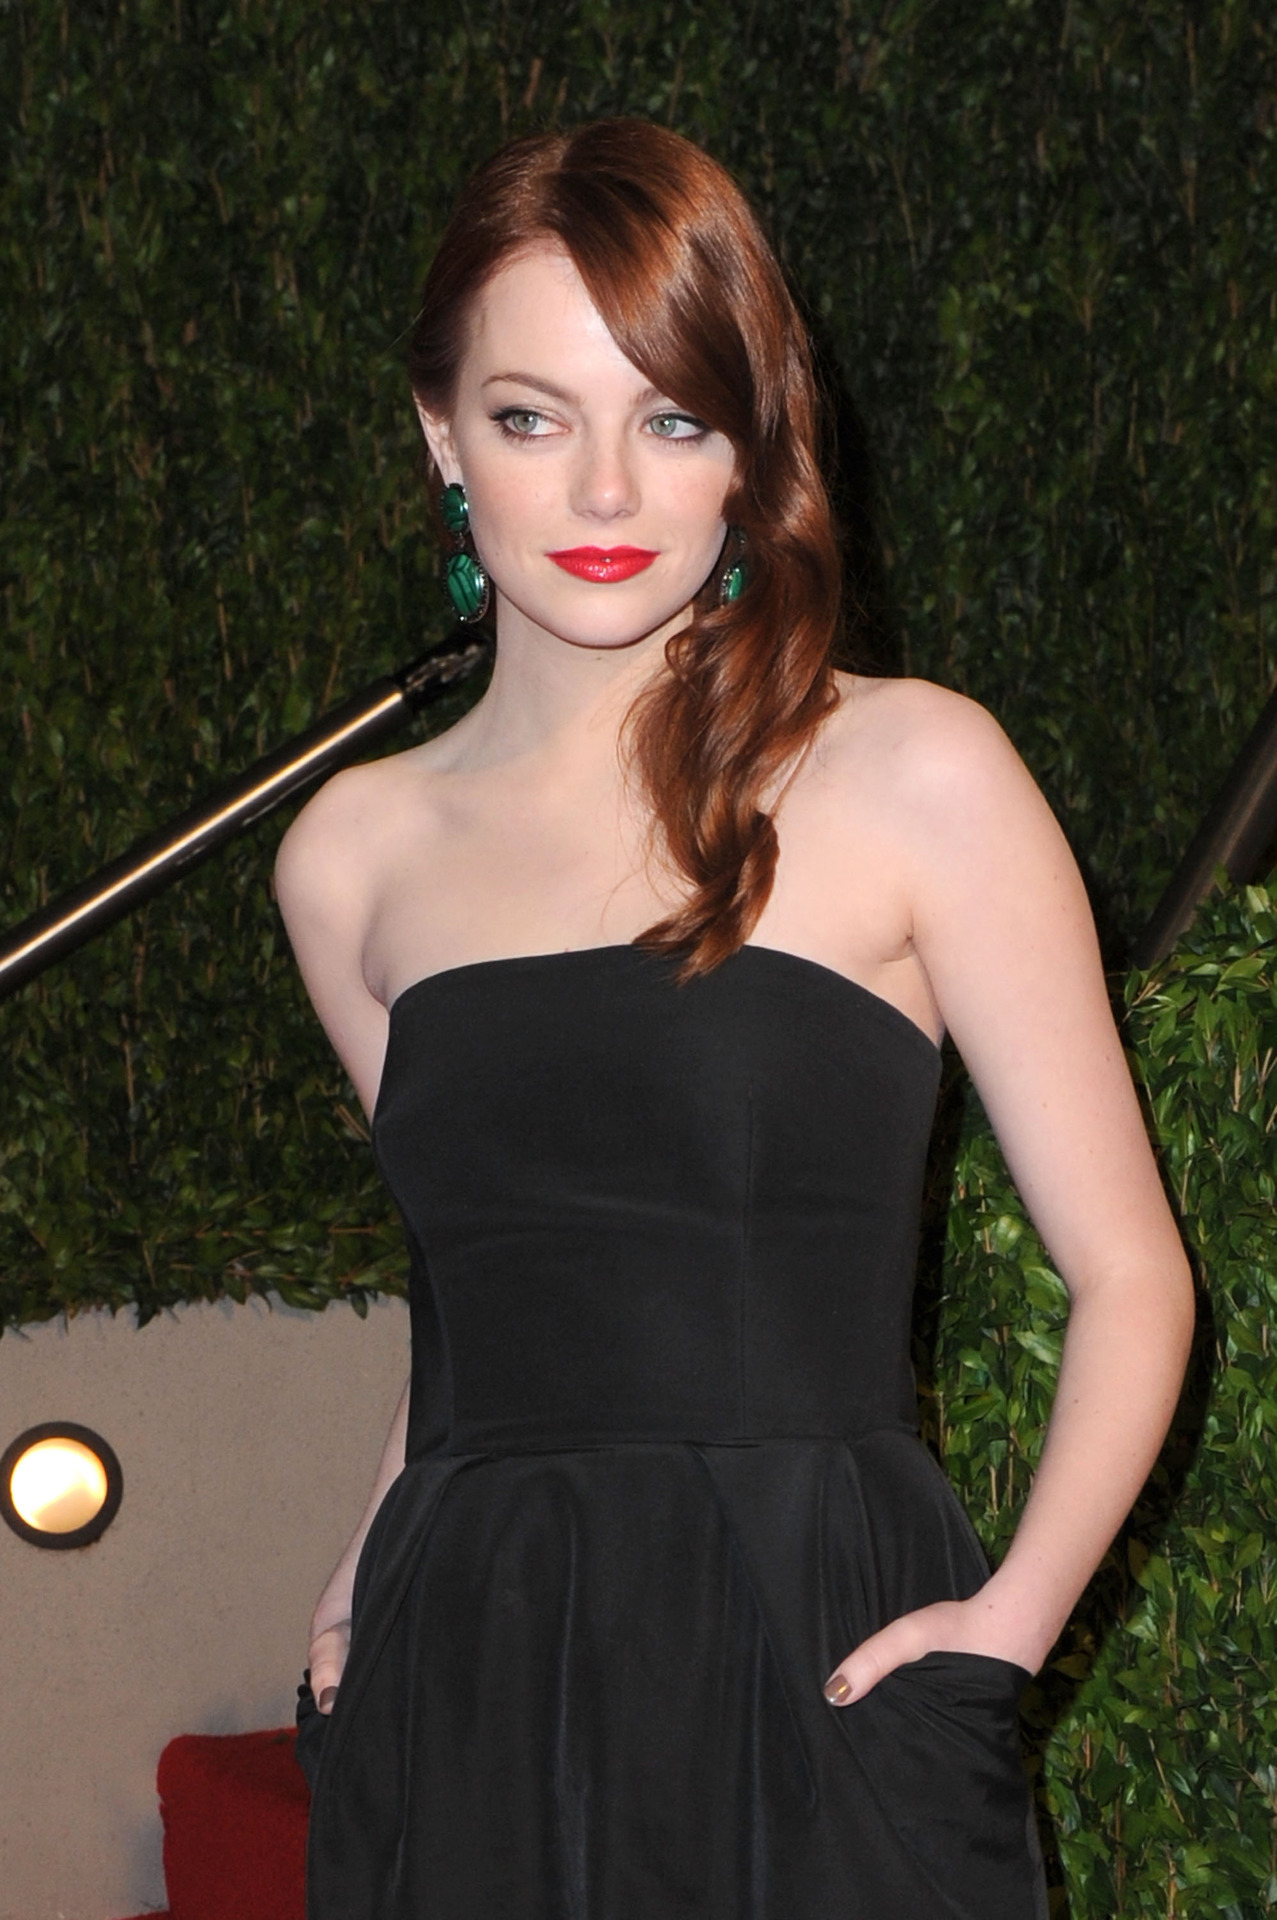 Emma Stone - 2010 Vanity Fair Oscar Party 7 March 2010Emma Stone - Source : SwaGirl.com